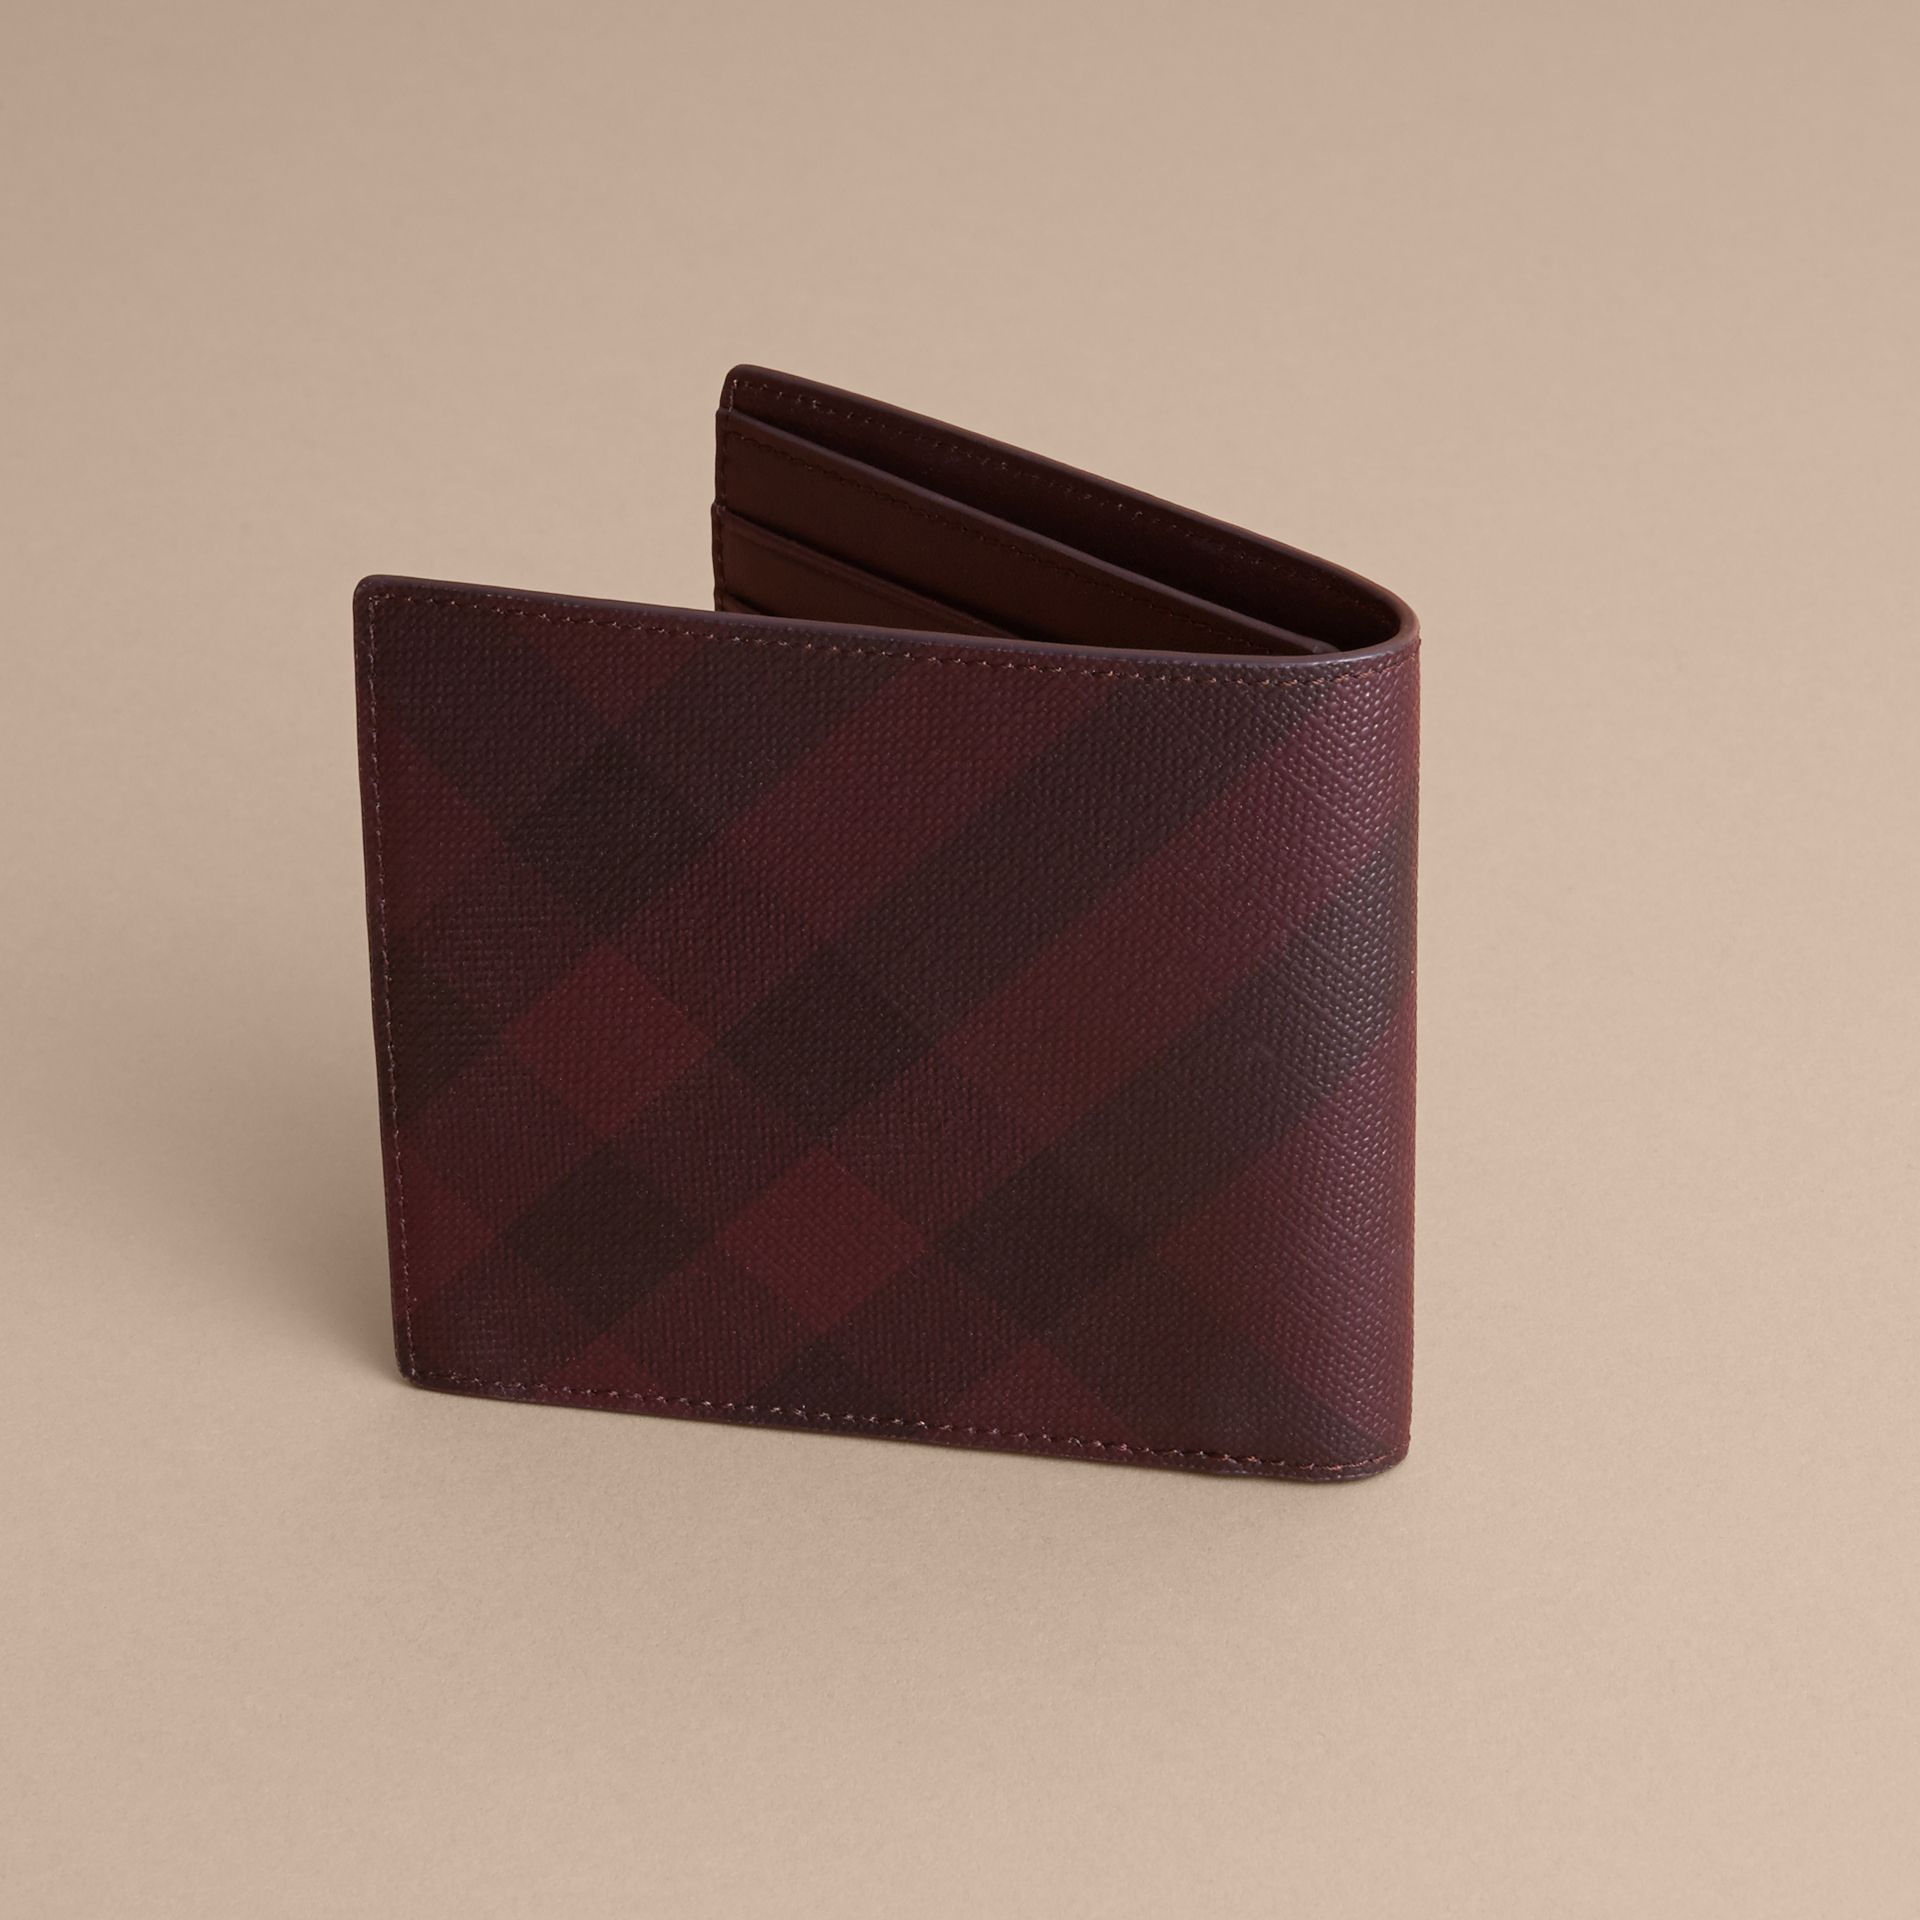 Portefeuille à rabat avec motif London check (Bordeaux Intense) - Homme | Burberry - photo de la galerie 4